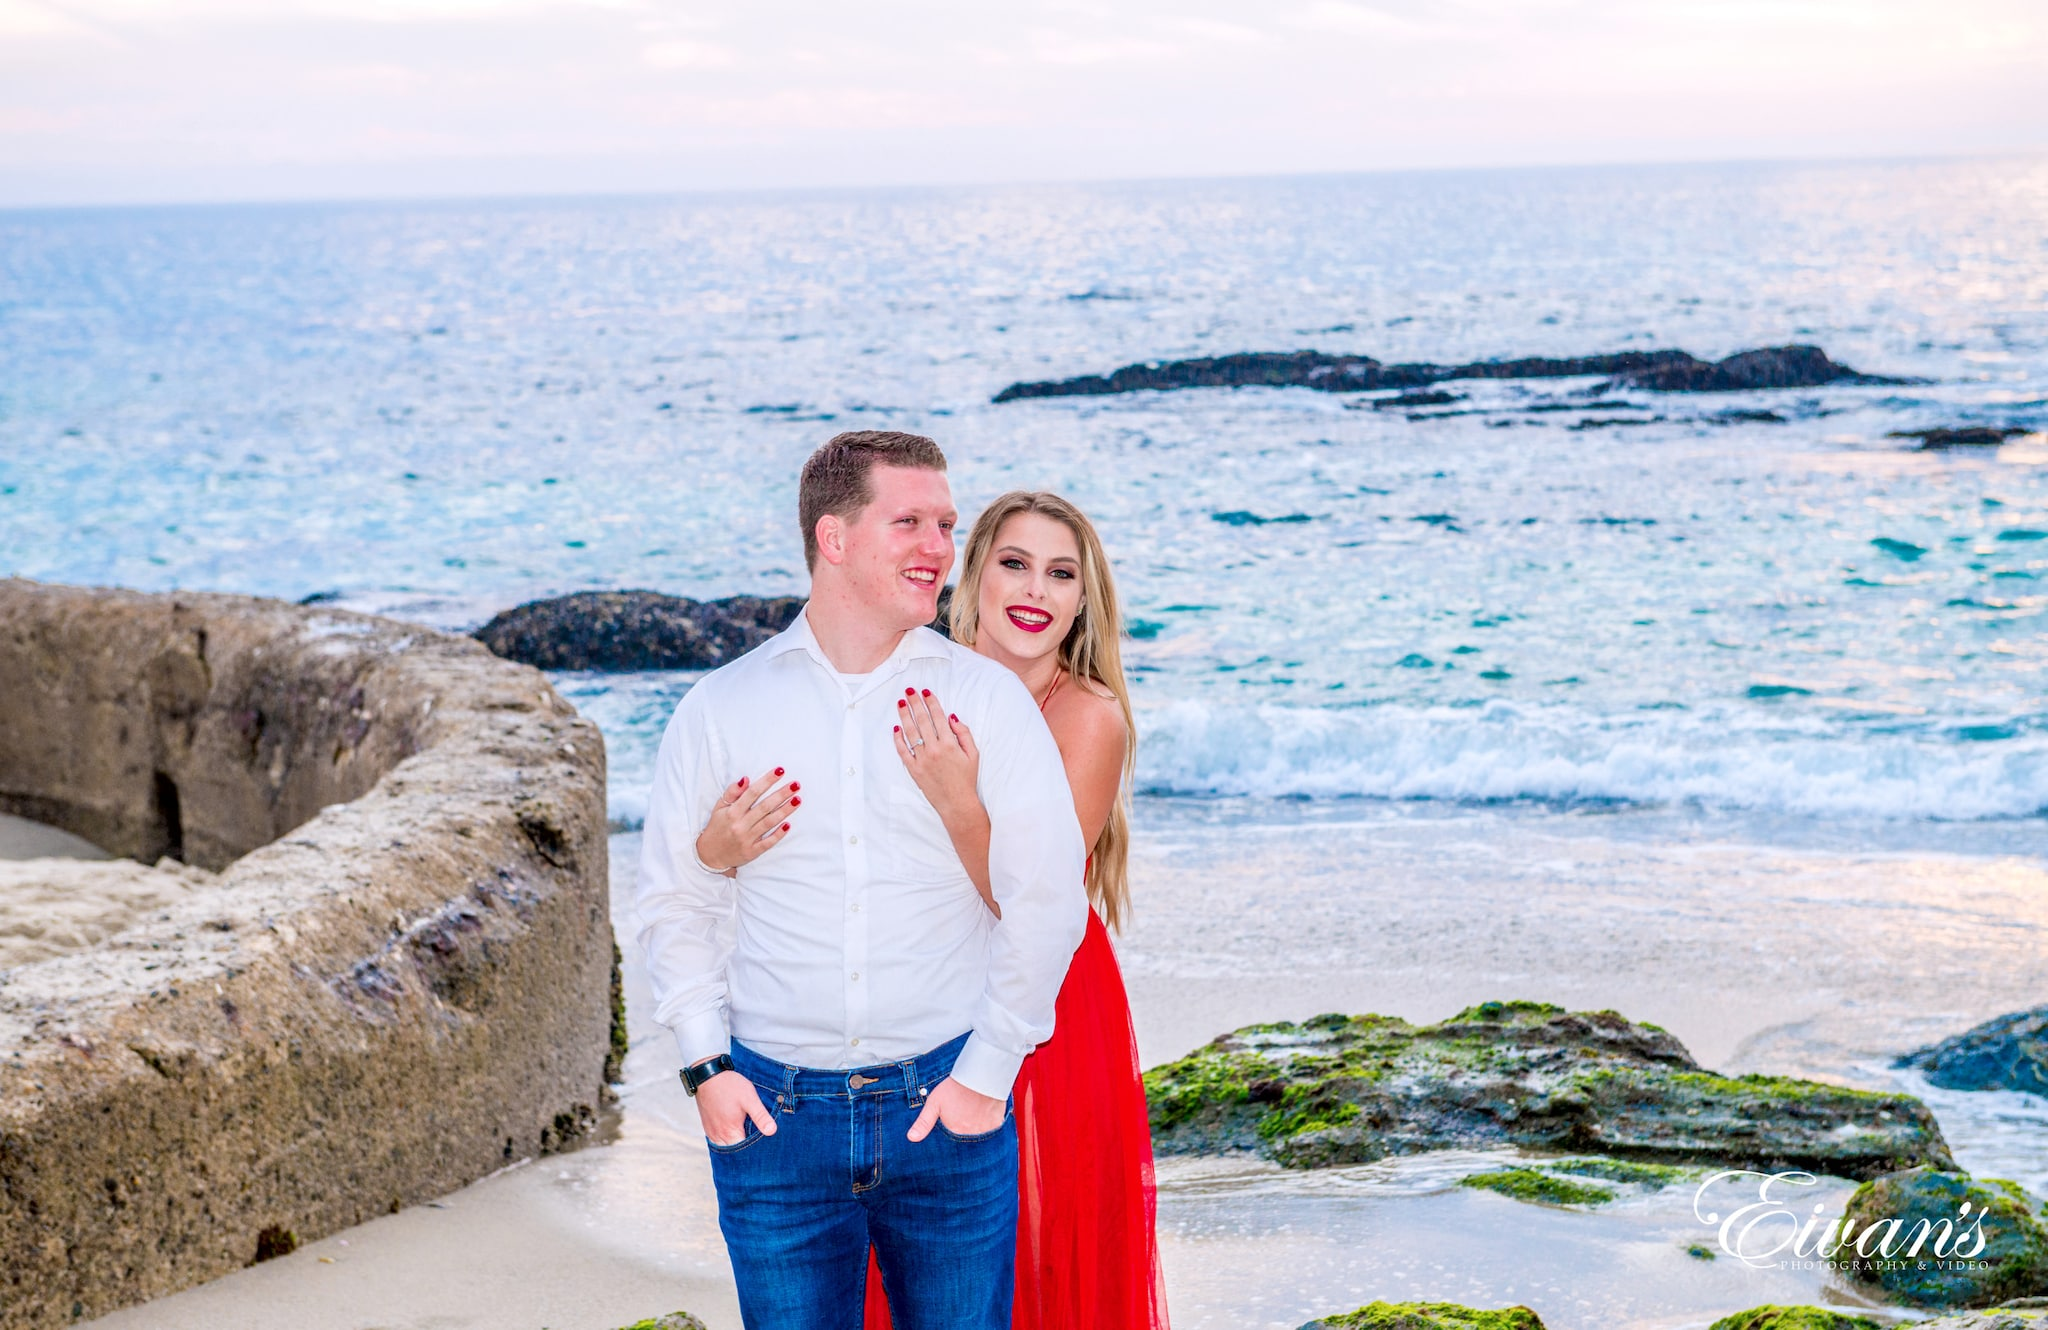 man in white dress shirt beside woman in red dress standing on brown rock near body